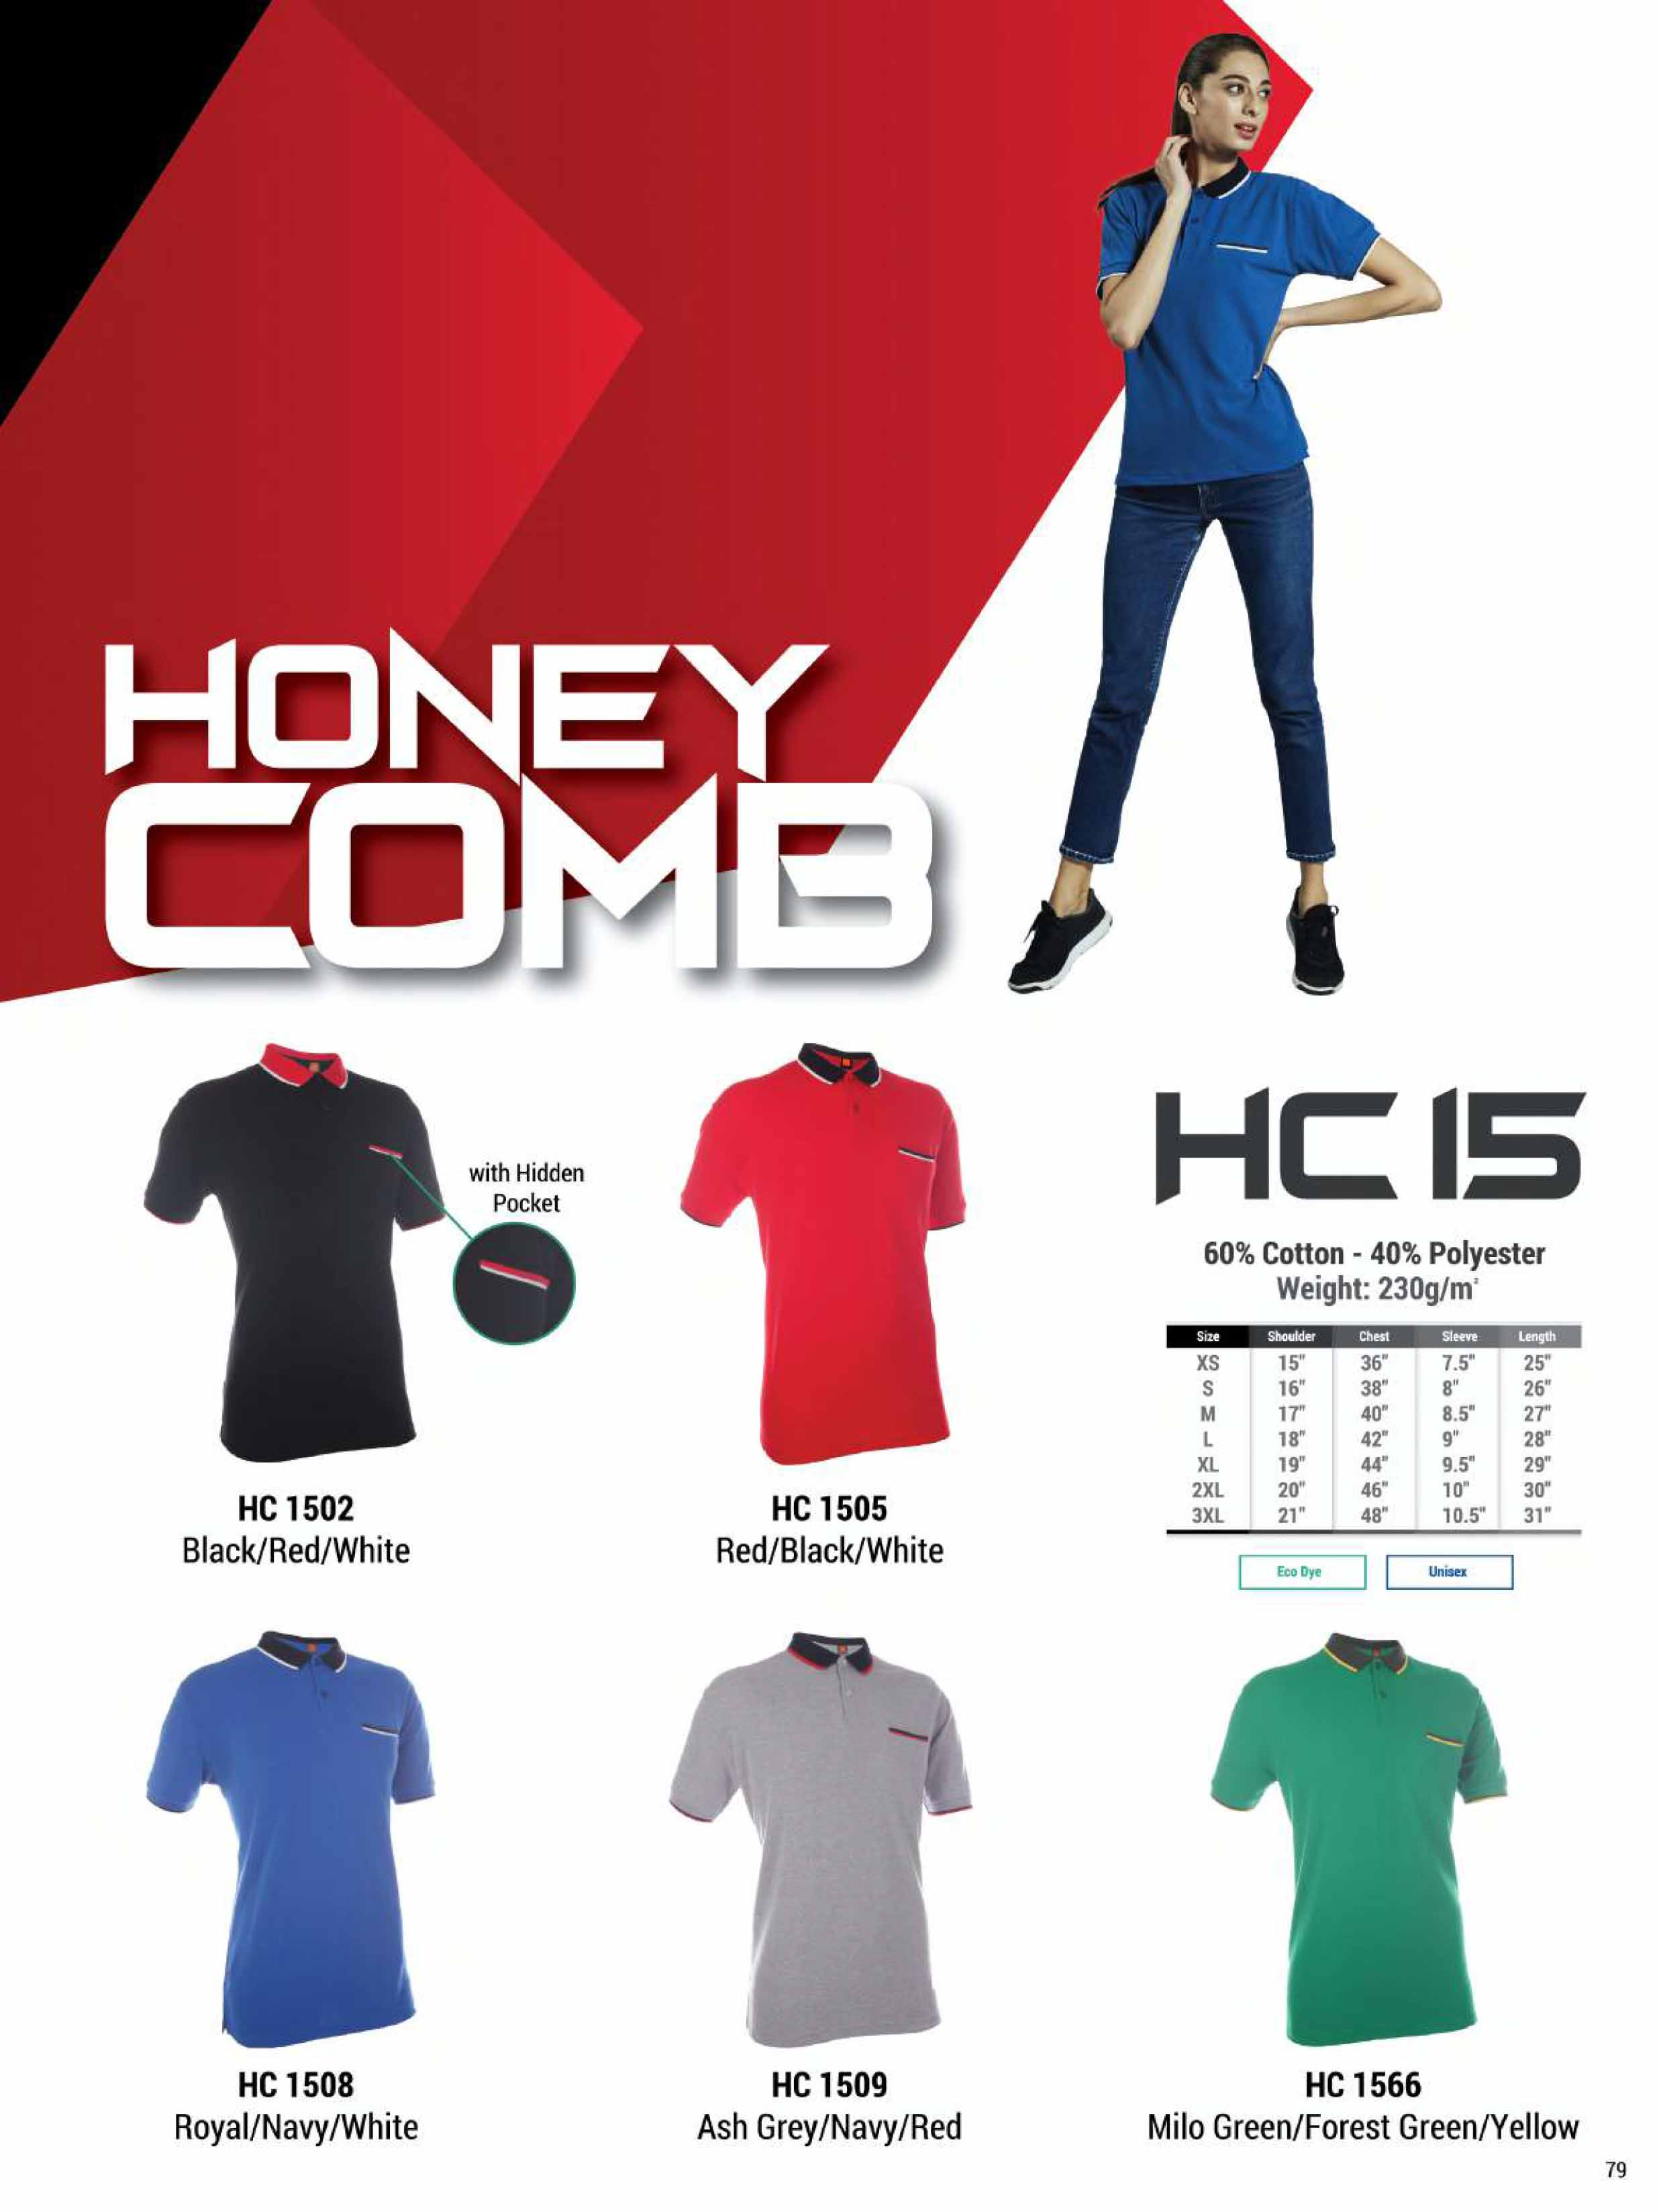 HC15 HONEYCOMB COTTON POLO T-SHIRT